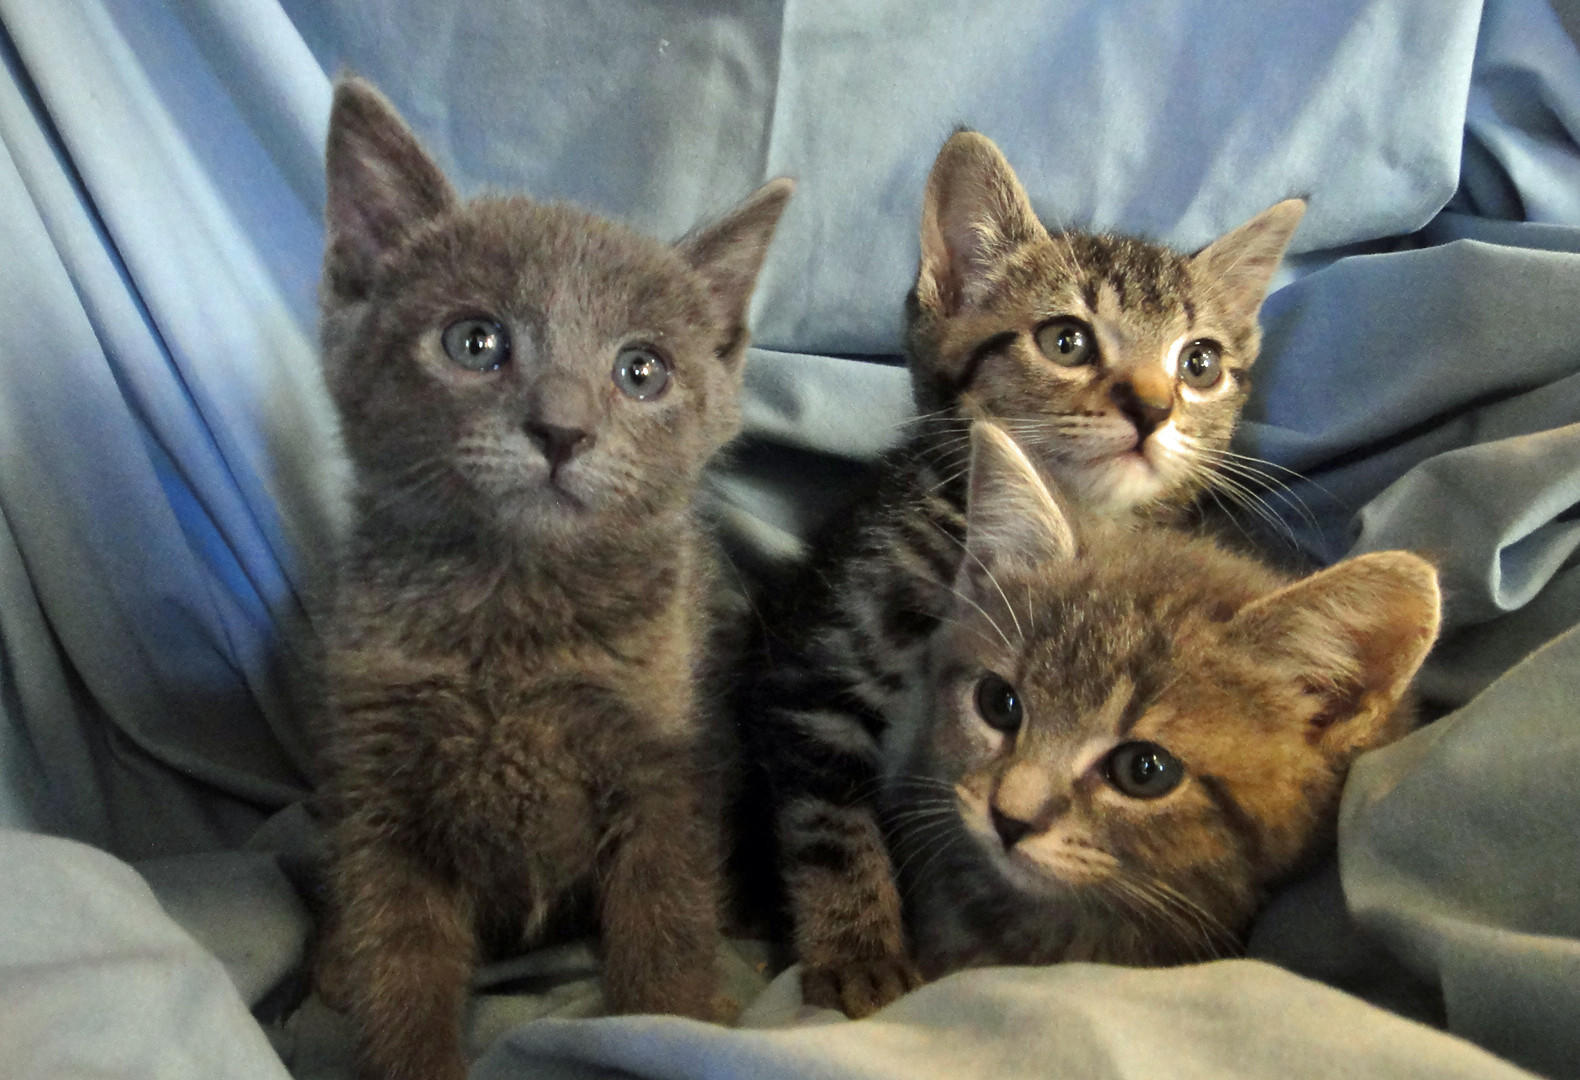 Cloudy (male Russian Blue), Misty (female Silver Tabby), and Windy (female Black Marble Bengal-Tabby).